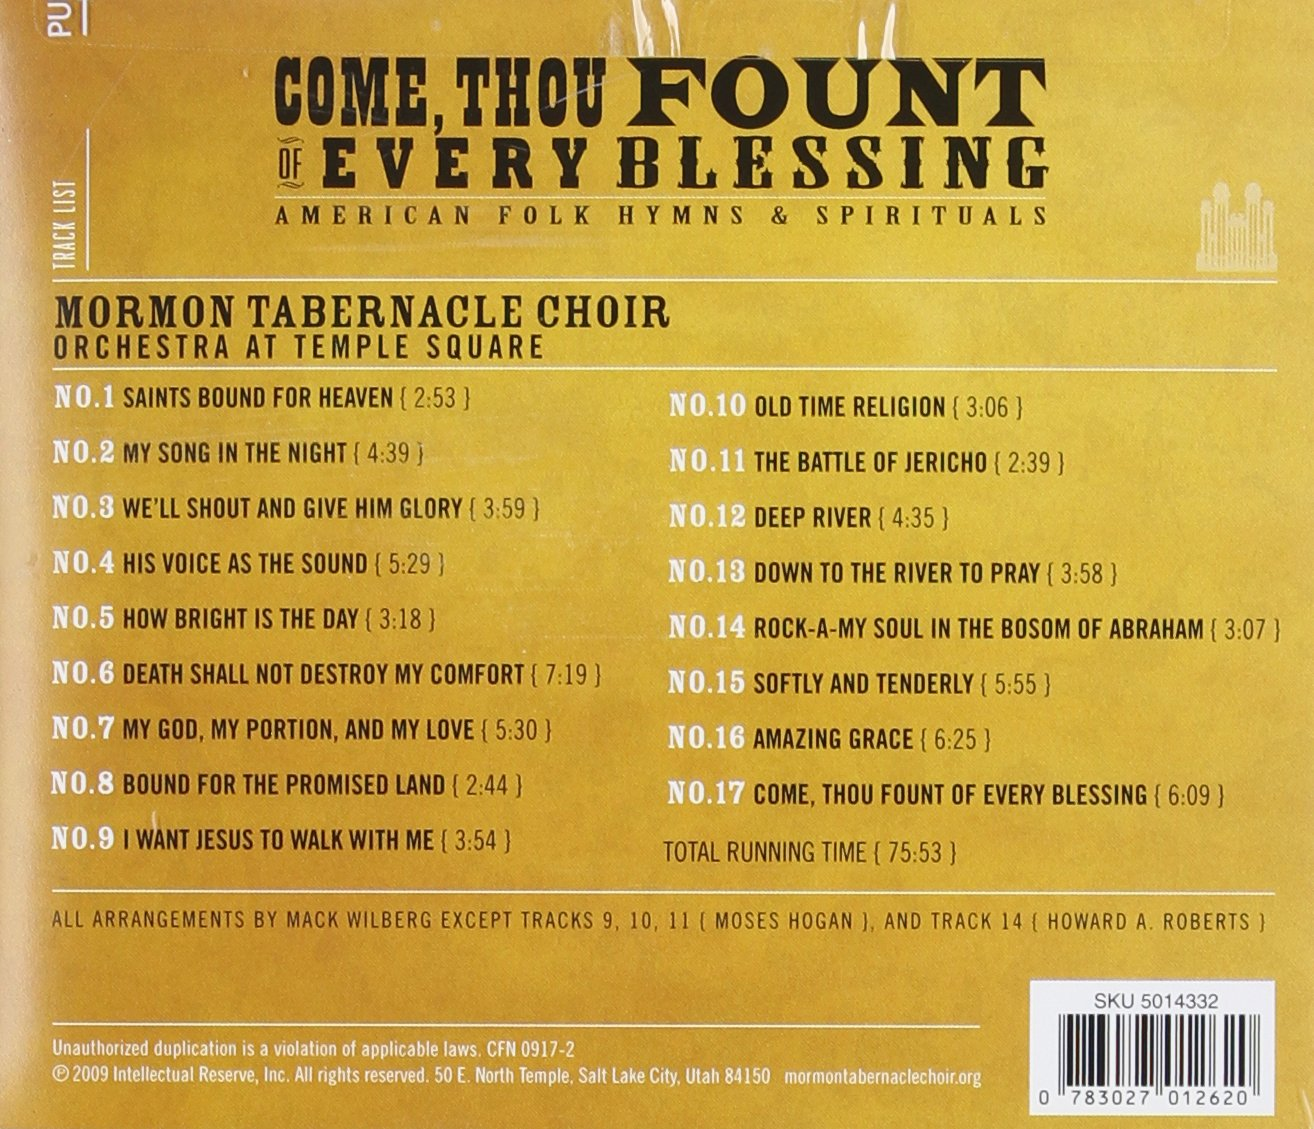 Come Thou Fount of Every Blessing by Mormon Tabernacle